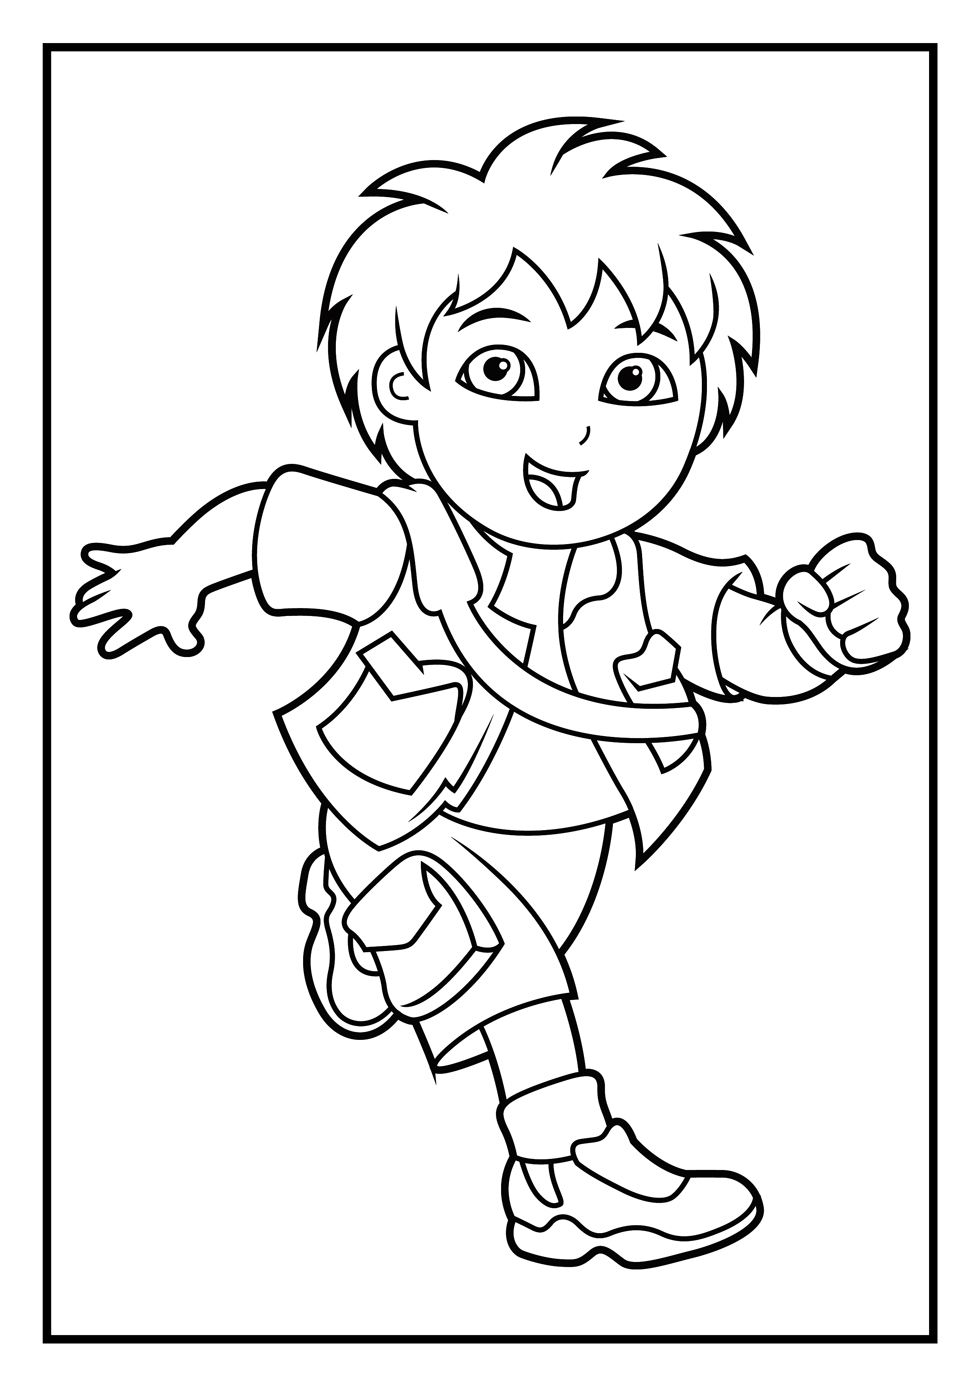 980x1386 Dora And Diego Coloring Pages, Diego Coloring Pages Decoraciones